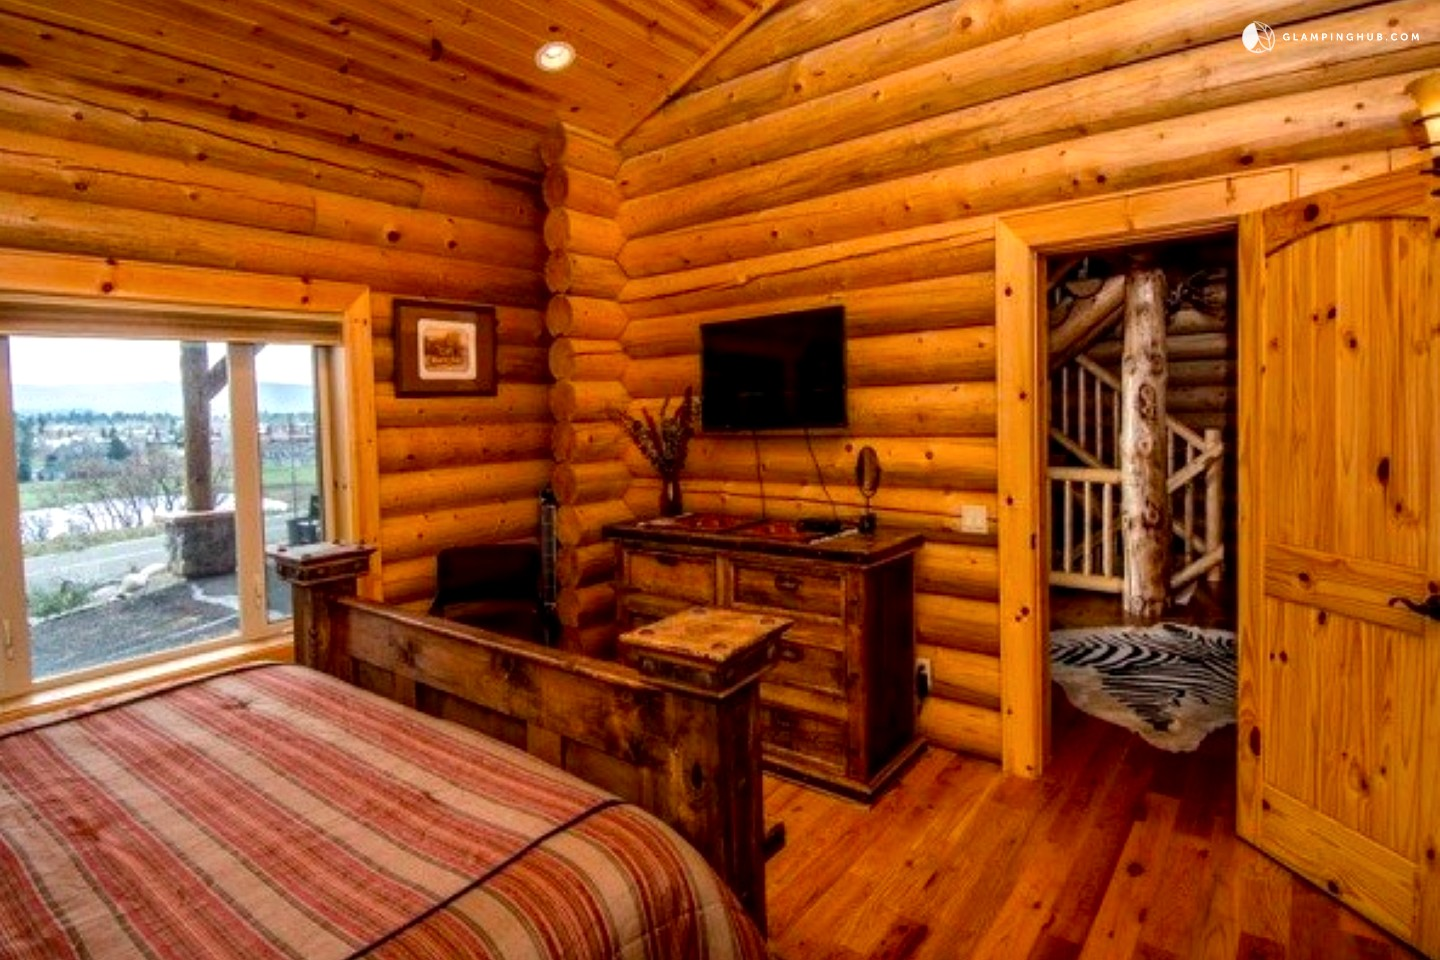 Log Cabin Rental In Pagosa Springs Colorado. Full resolution  portrait, nominally Width 1440 Height 960 pixels, portrait with #B74B06.